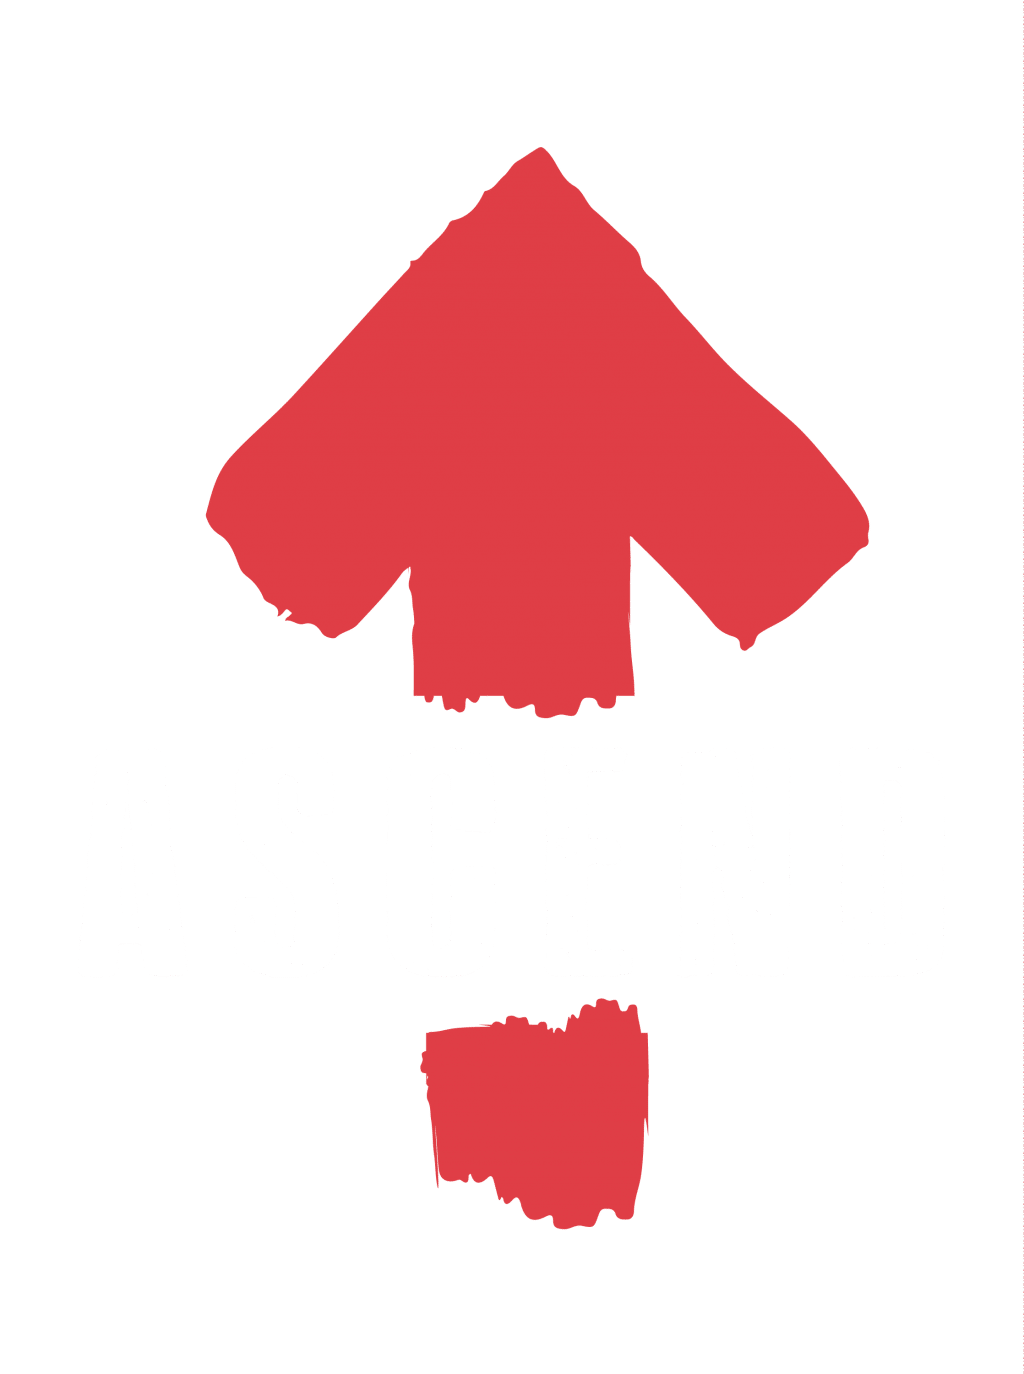 ascend_red_wht